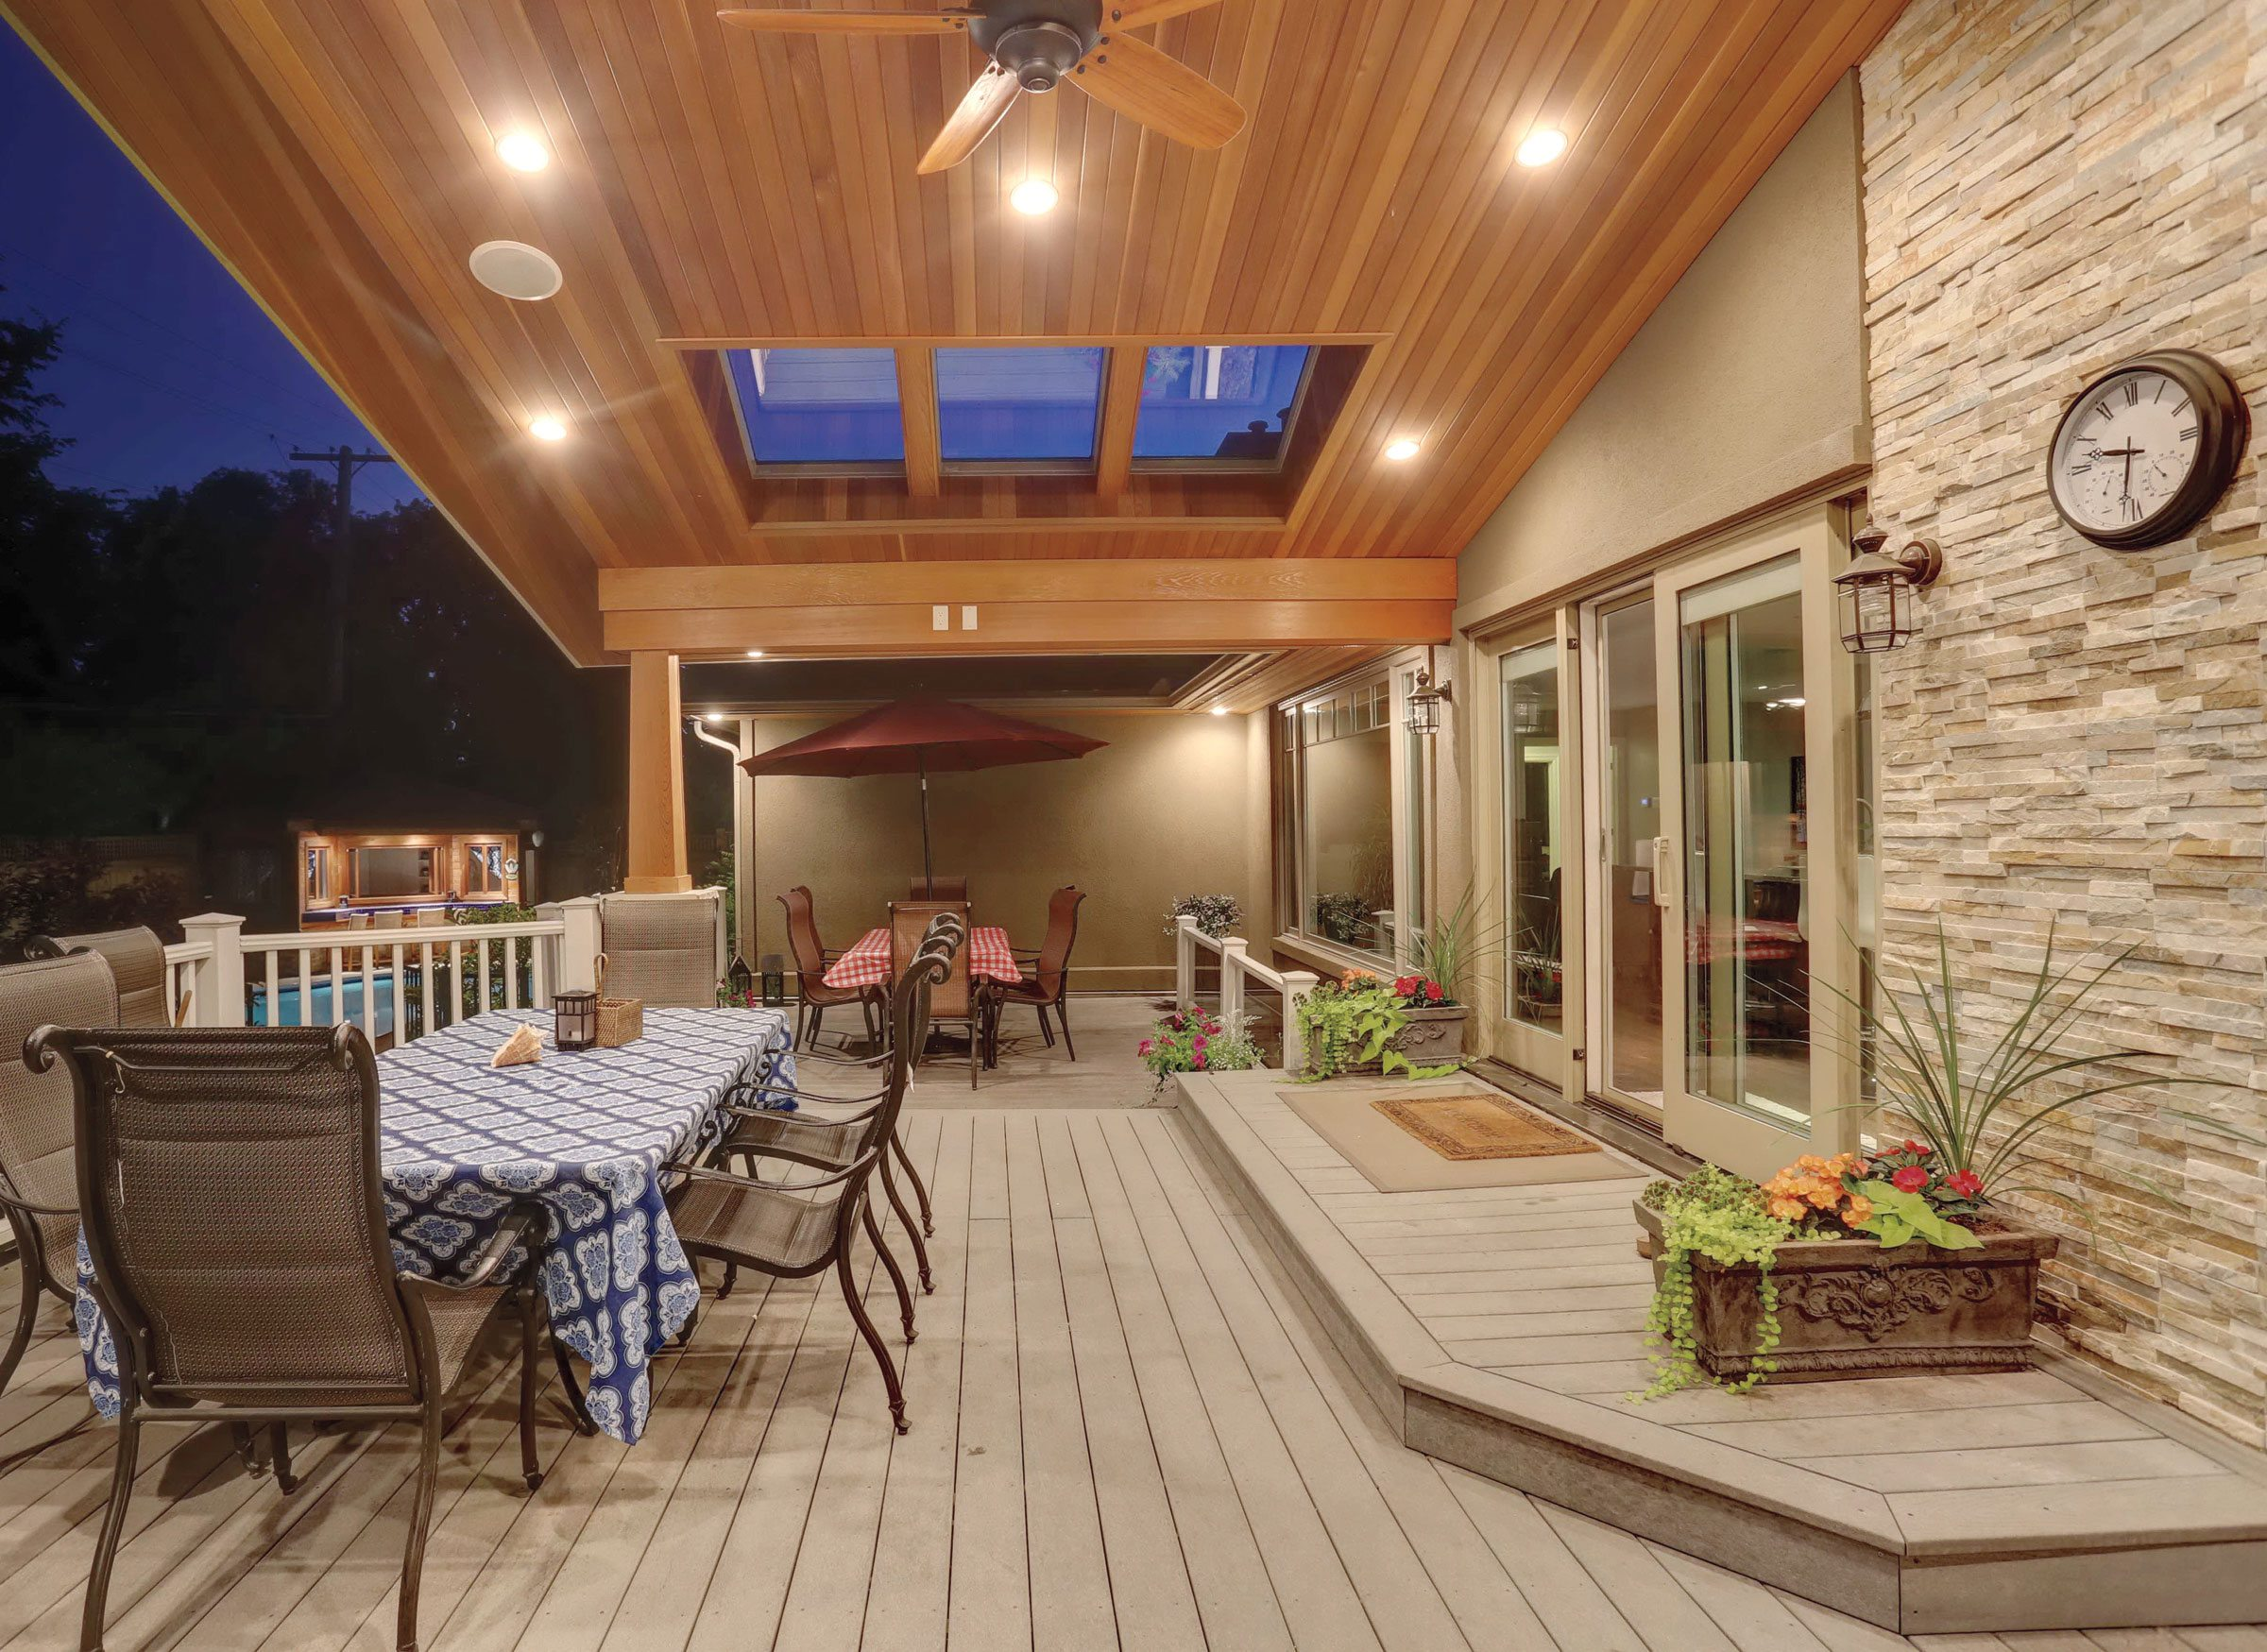 Because the deck faces west, the cedar canopy ensures it doesn't get too hot in the afternoon, while skylights allow light to filter in throughout the day. The seating area with the red sunshade is open to the elements. Stairs lead to a garden and pool